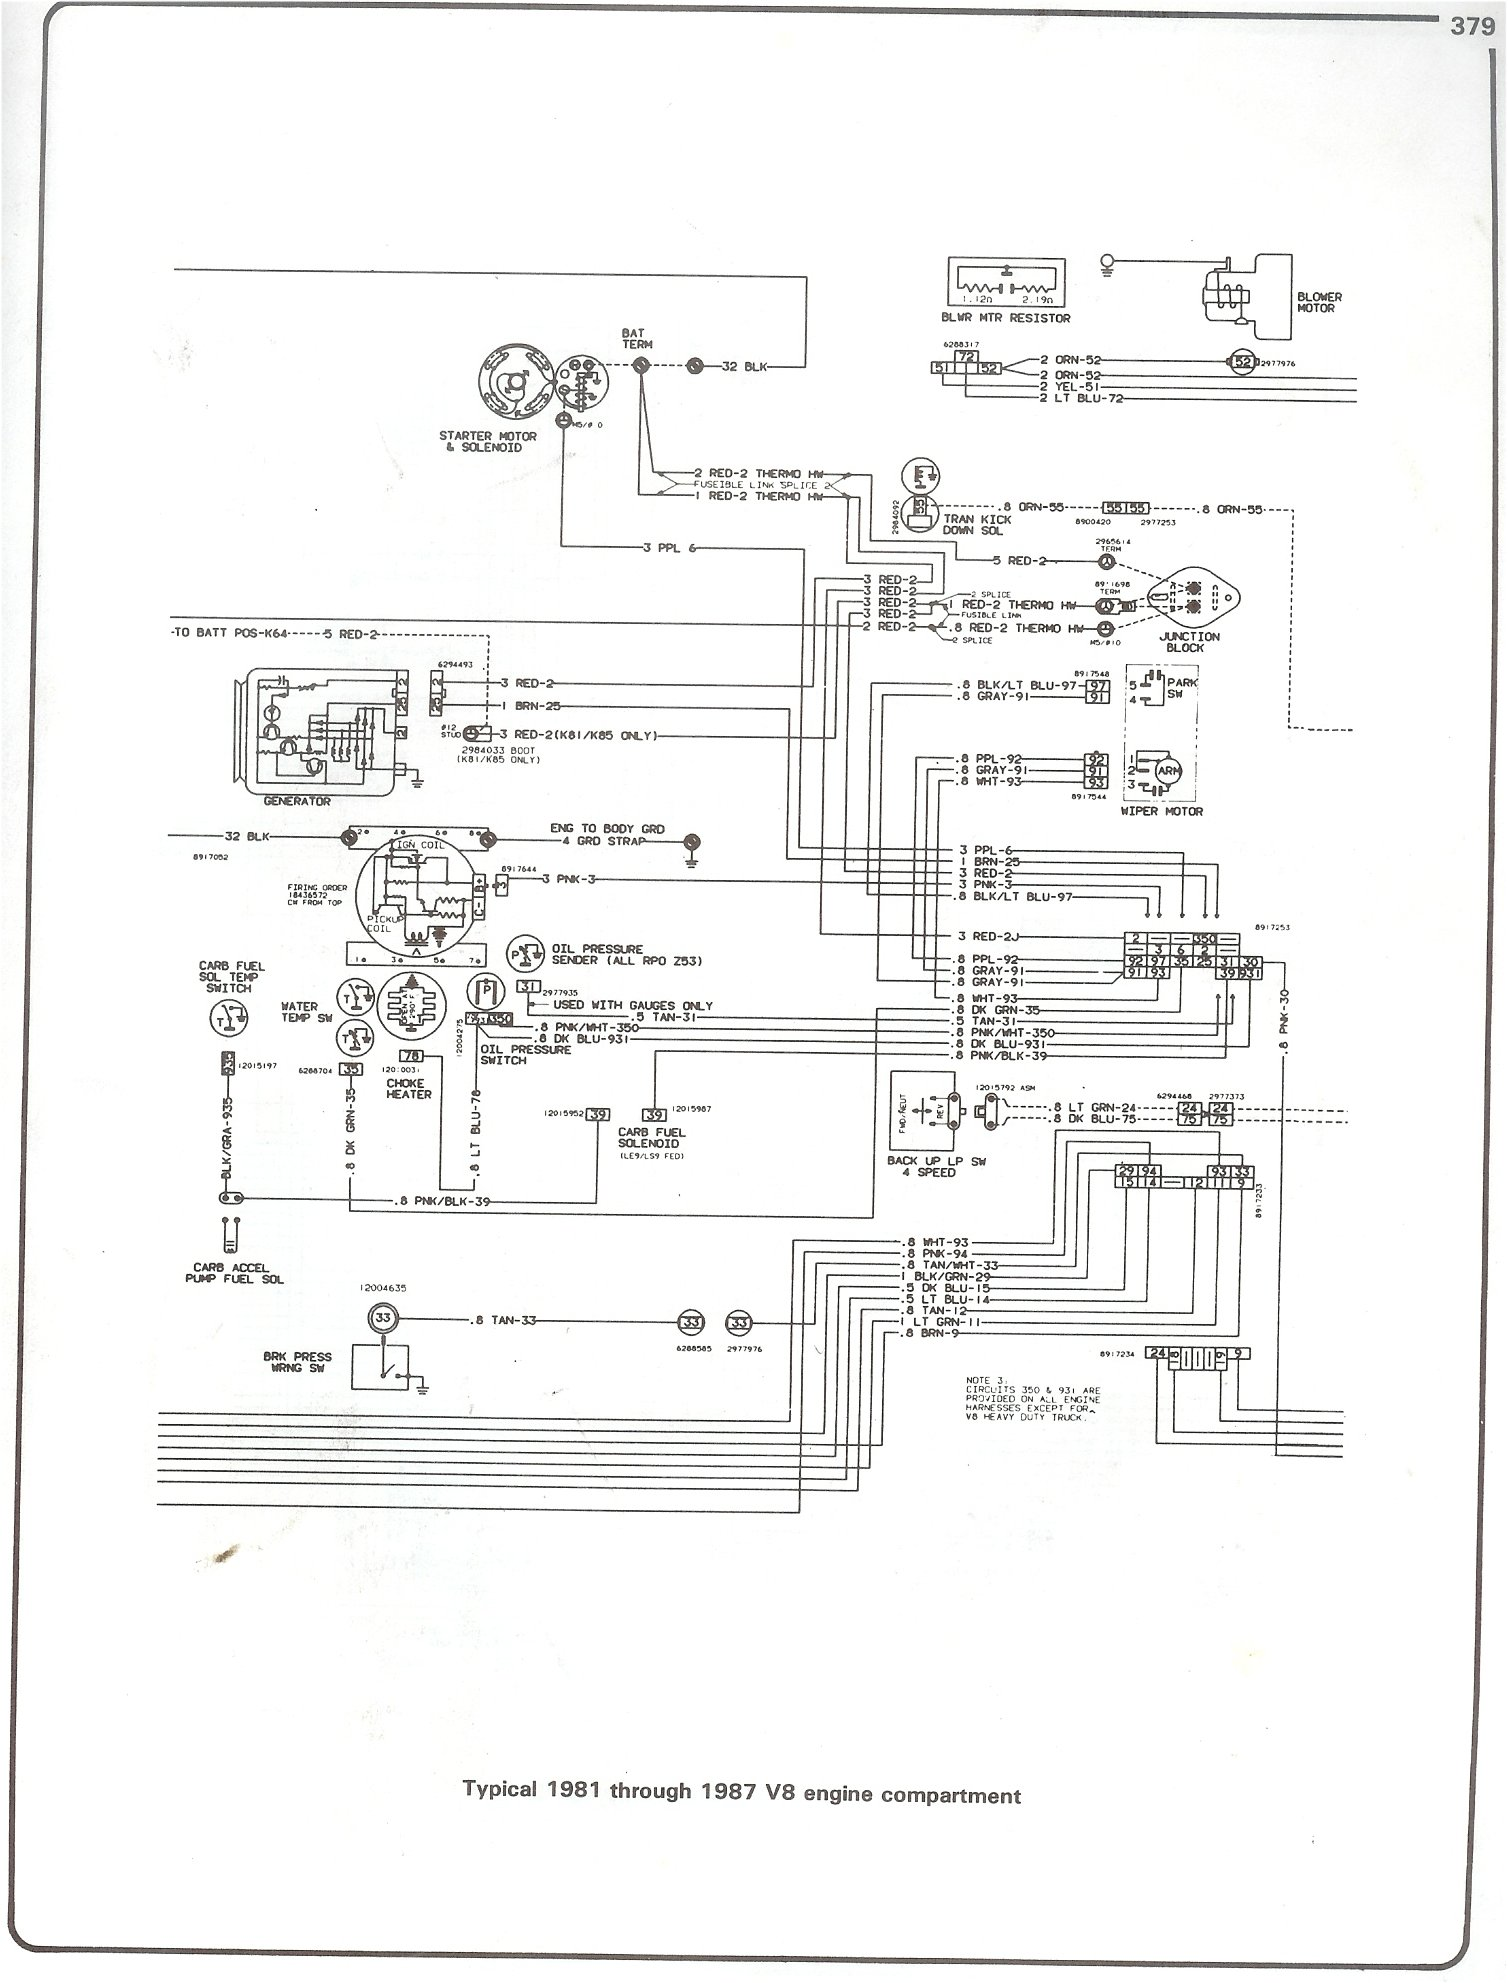 81 87_V8_engine complete 73 87 wiring diagrams chevy truck wiring diagram at fashall.co